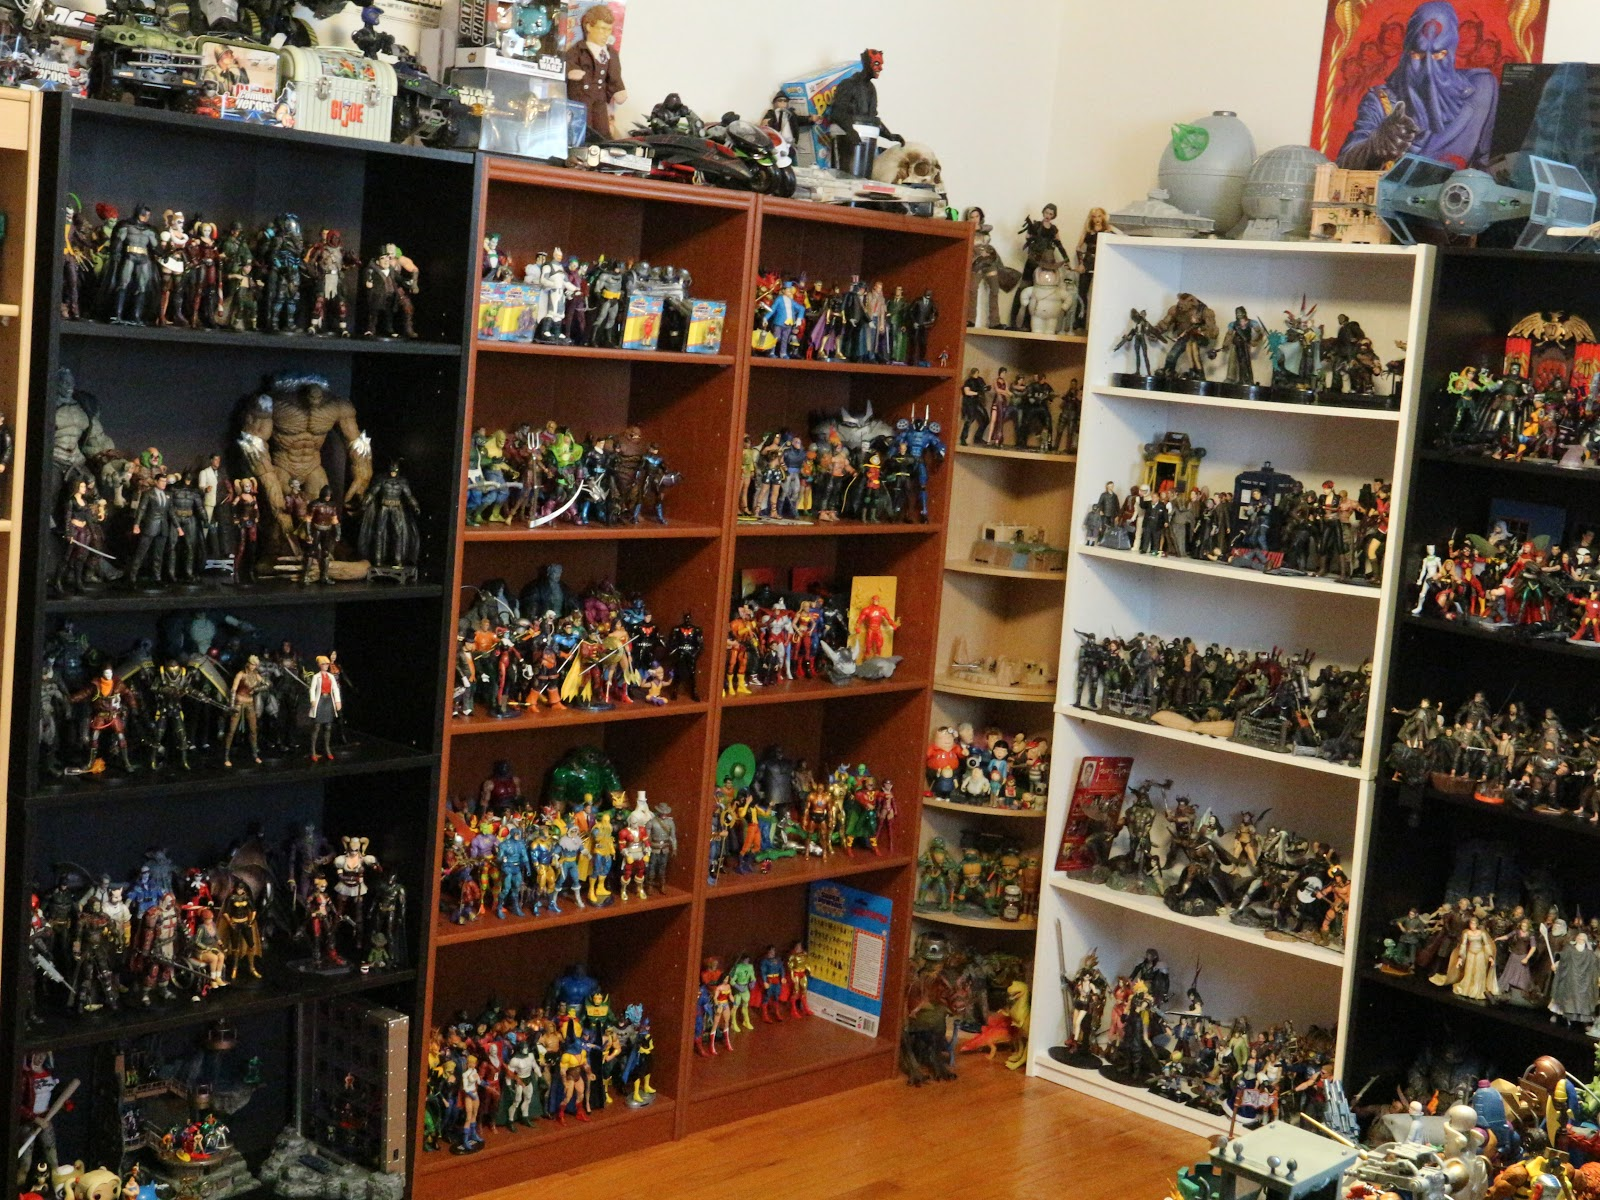 80 Toy Action Figure Shelves - shelves_Must see 80 Toy Action Figure Shelves - shelves  Pictures_974446.JPG